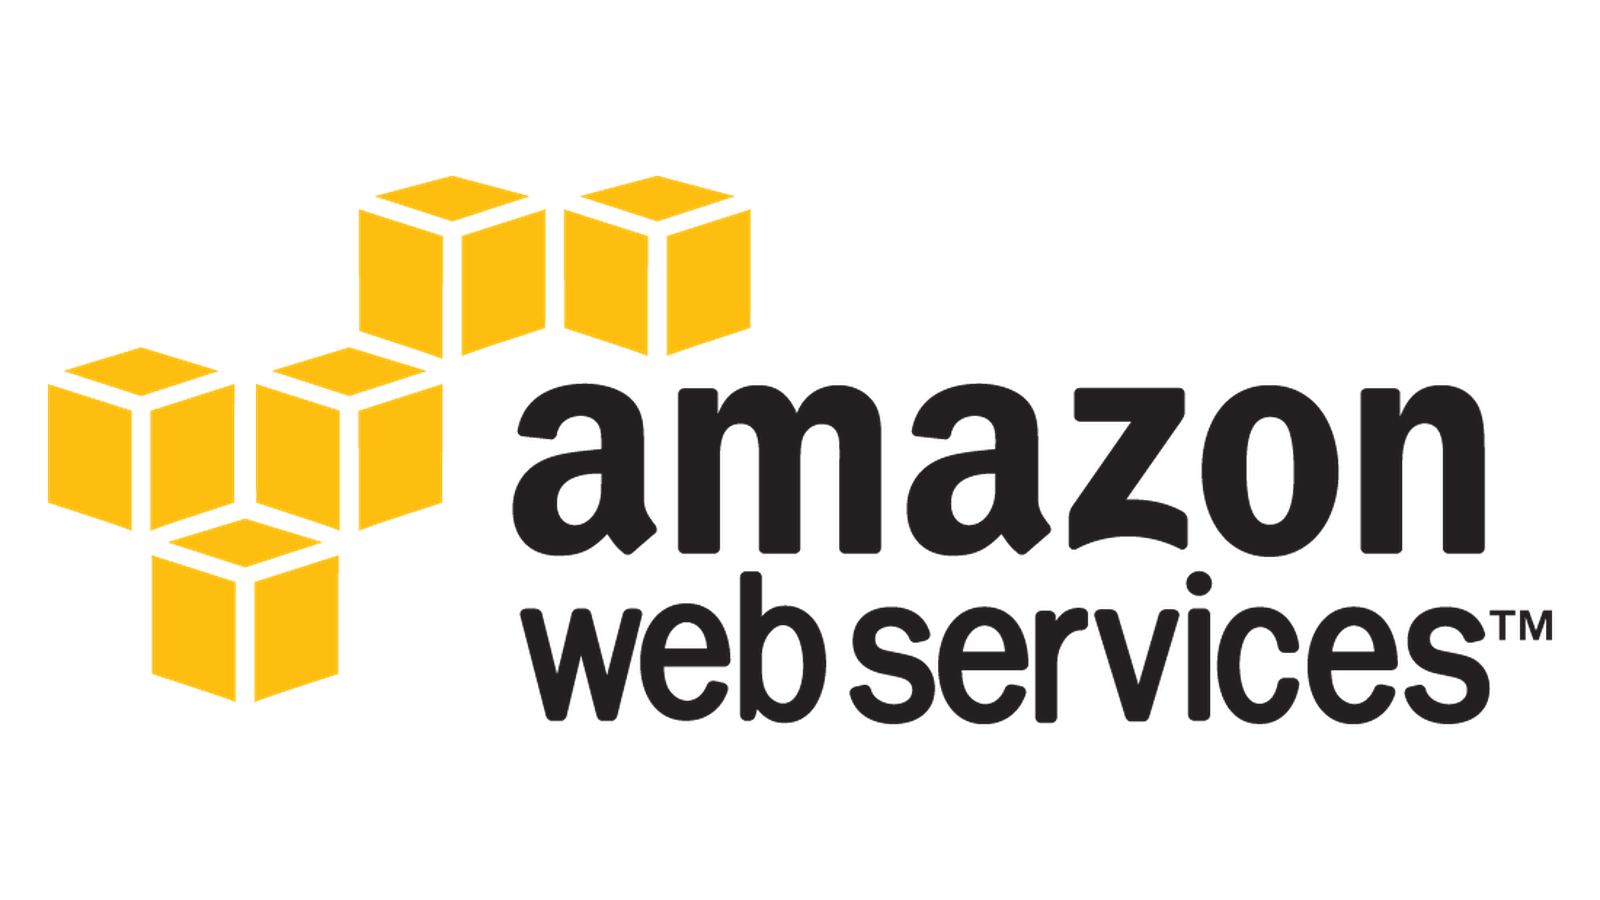 web services for cloud applications